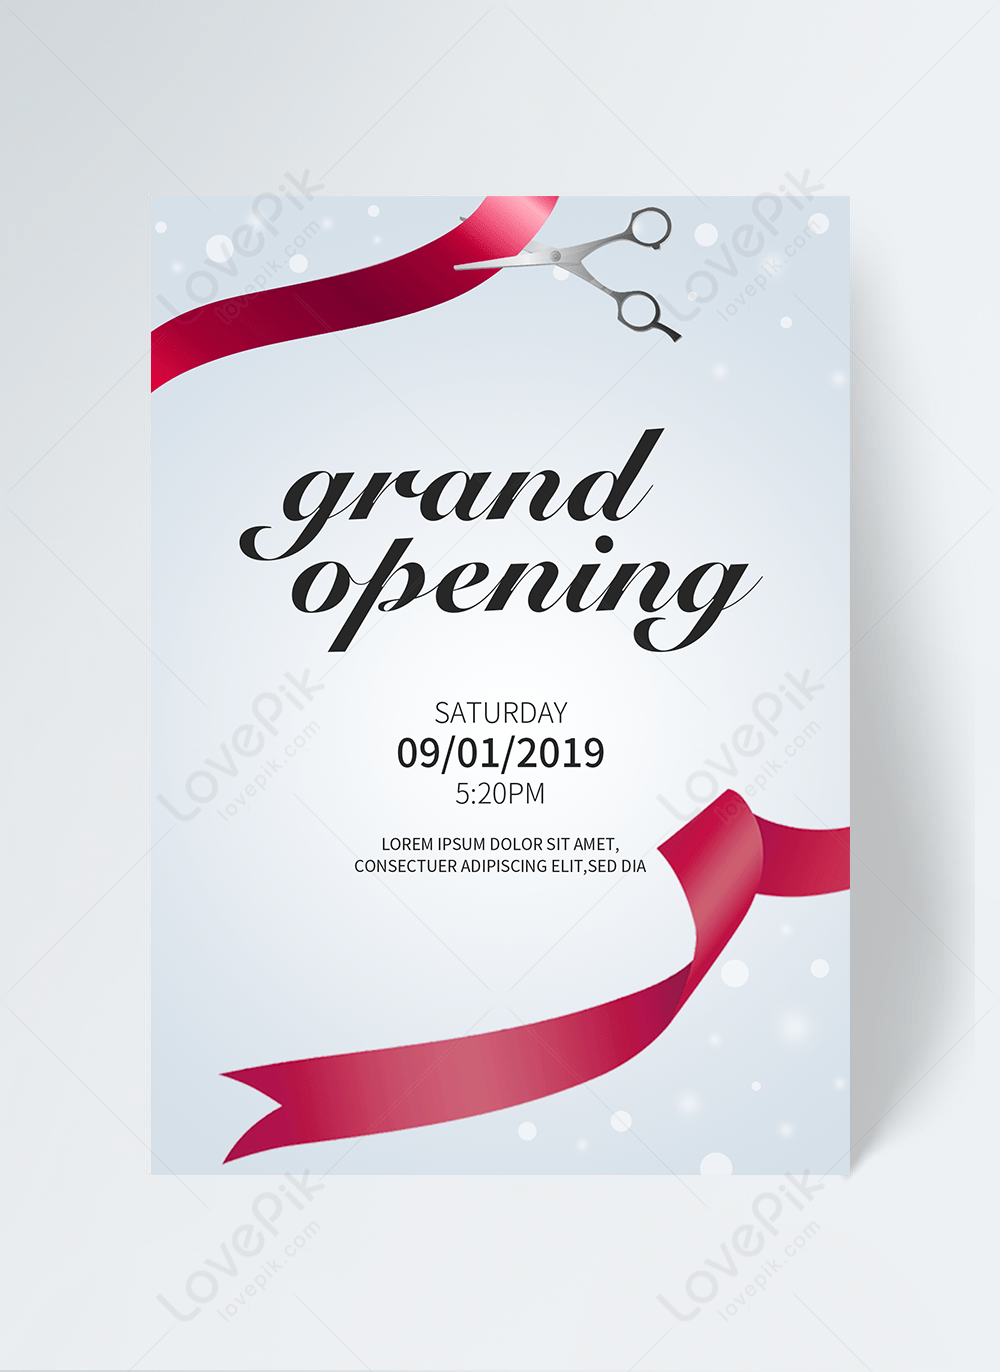 grand opening invitation letter of